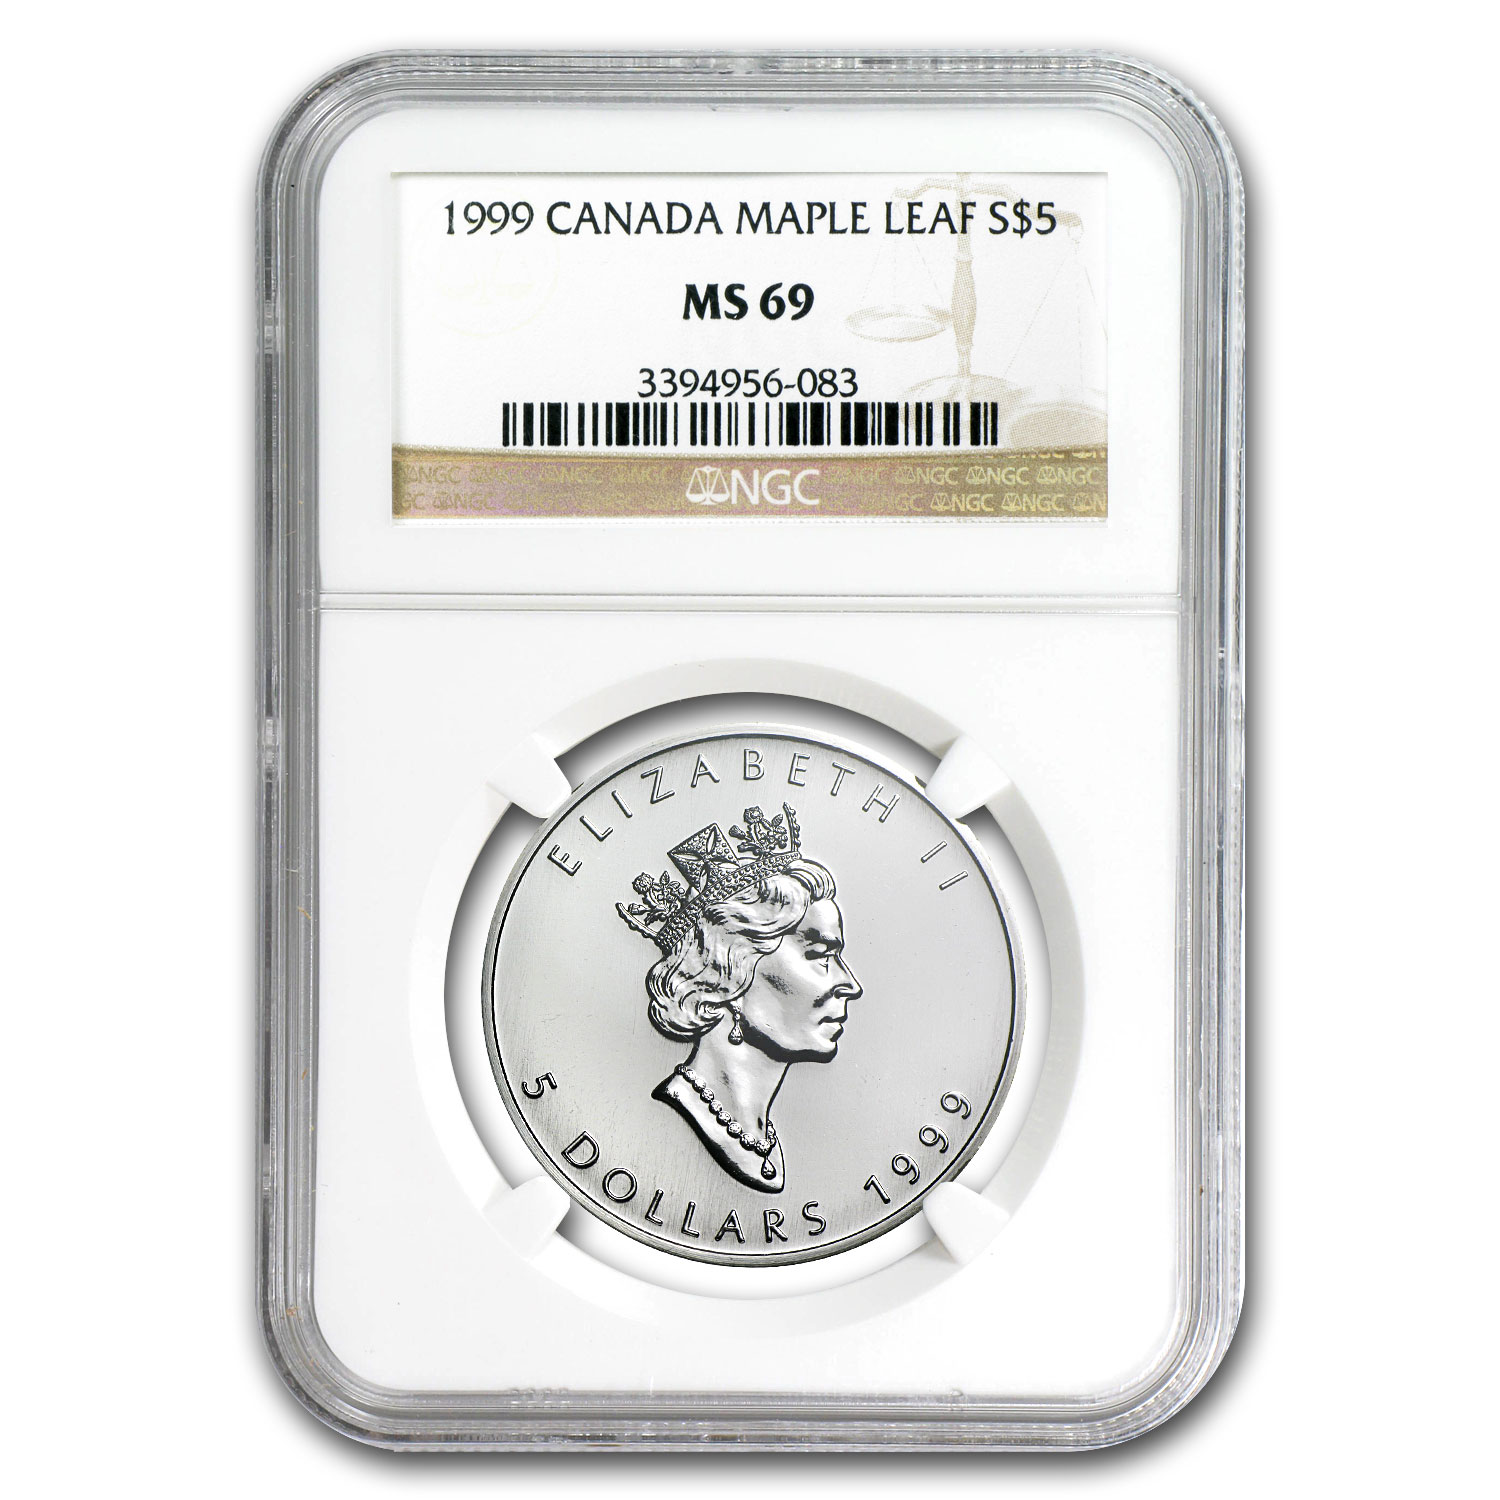 1999 1 oz Silver Canadian Maple Leaf MS-69 NGC